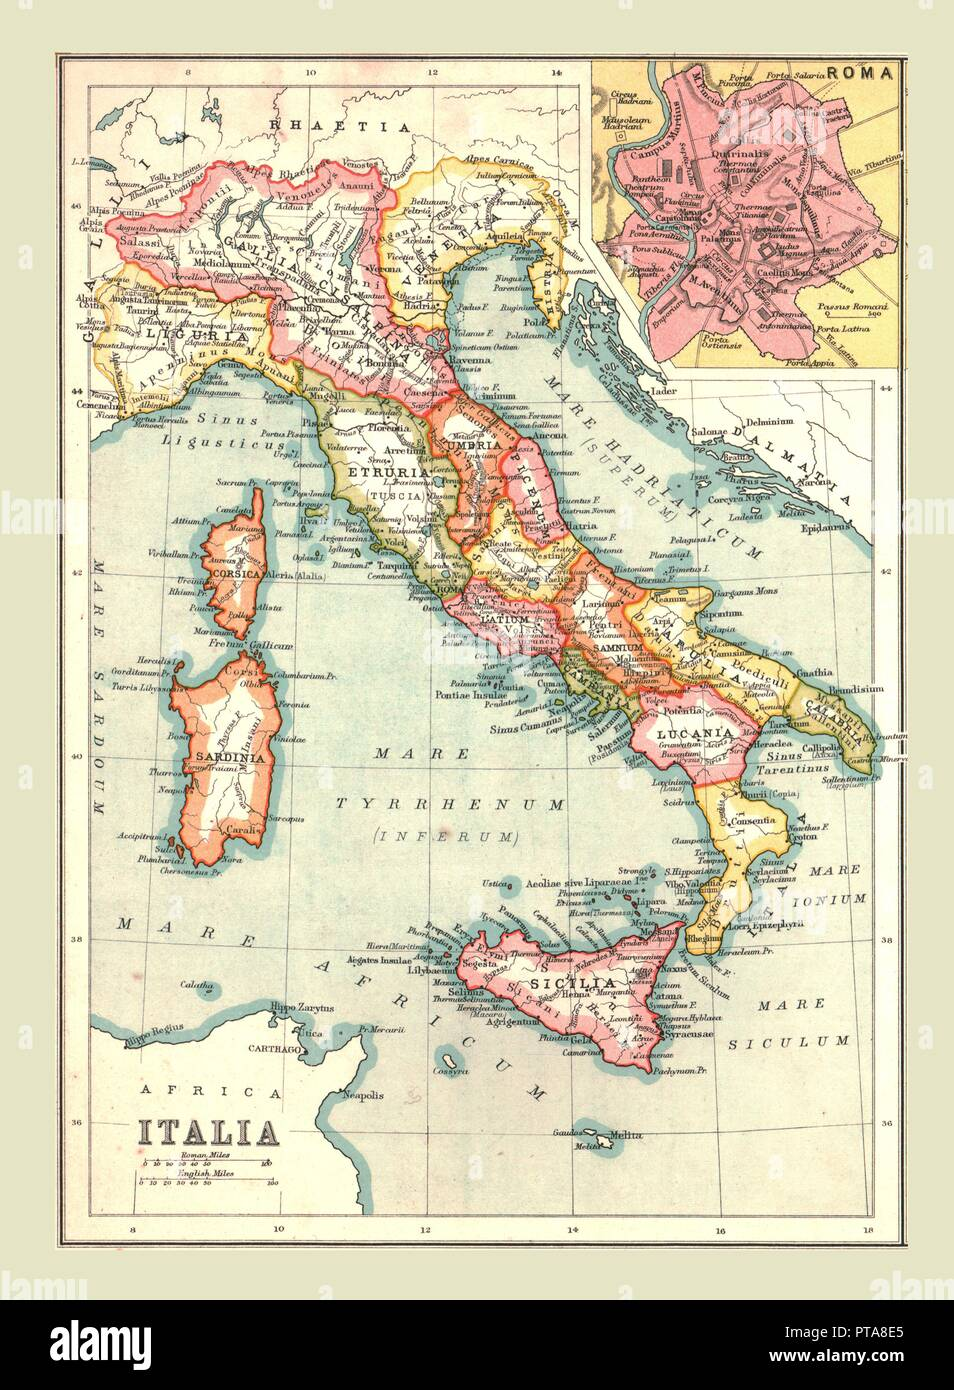 Map of 'Italia', (1902). Showing the Italian peninsula during the Roman period, with place names in Latin, and inset of Rome. From The Century Atlas of the World. [John Walker & Co, Ltd., London, 1902] - Stock Image